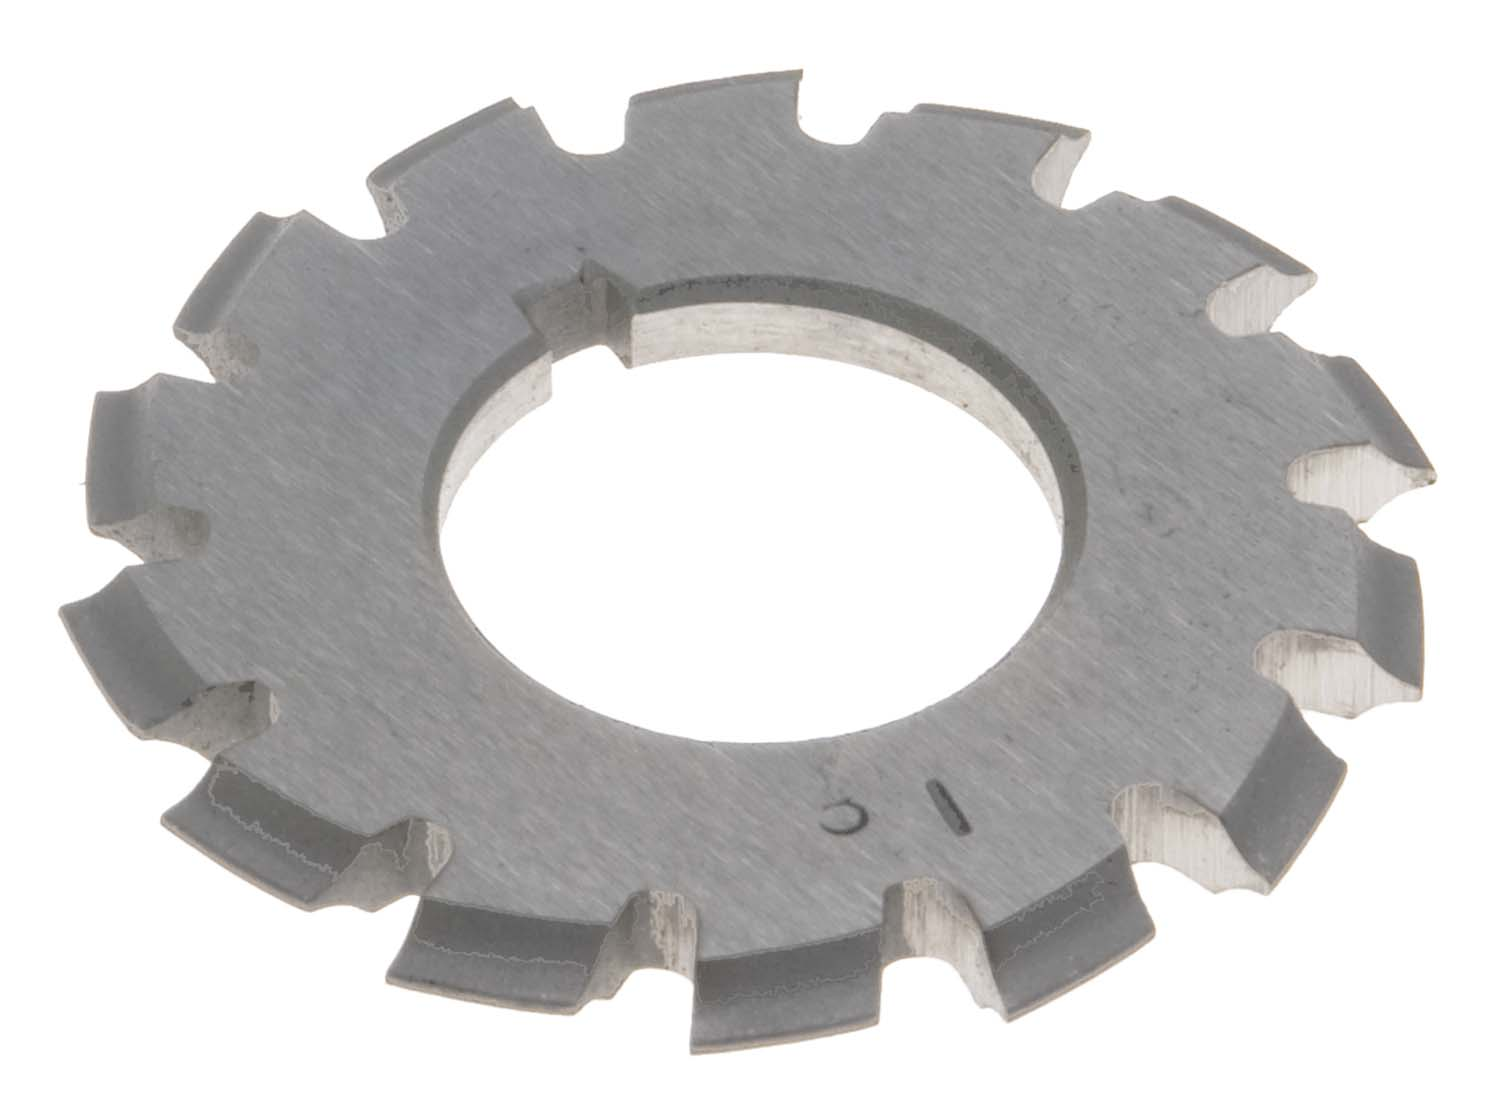 40 Diametral Pitch # 2  Involute Gear Cutter - 7/8 ID - 14-1/2 Degree Pressure Angle